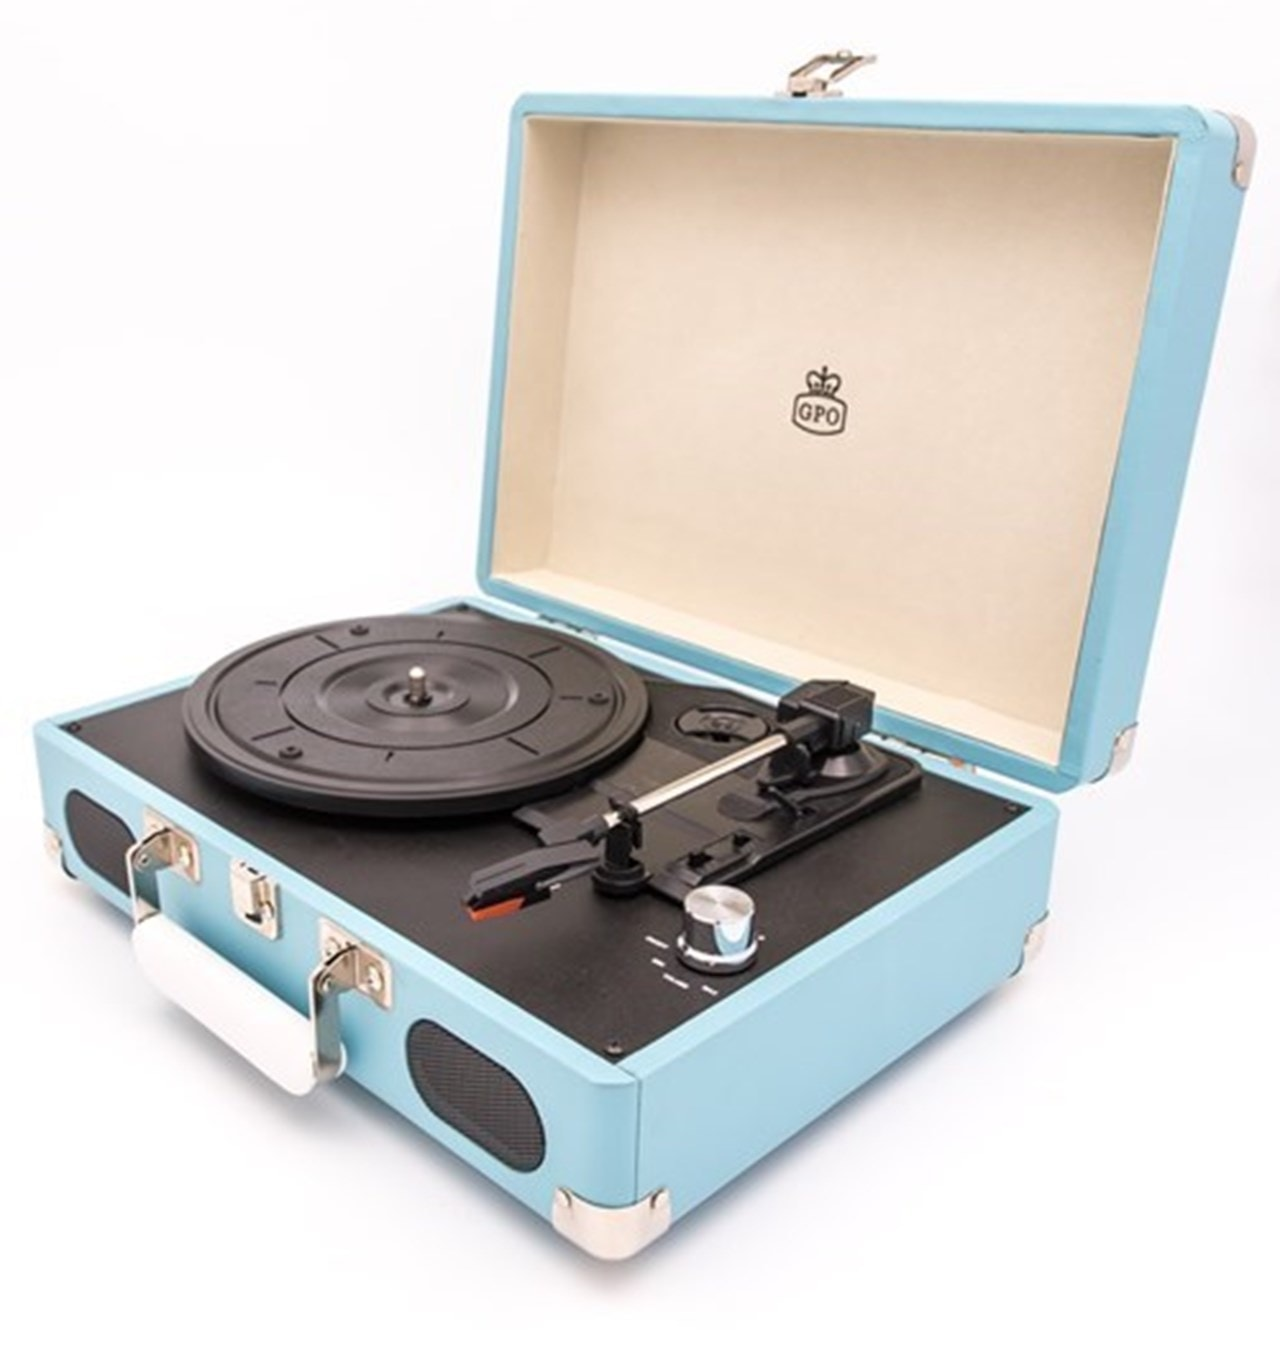 GPO Soho Turquoise Turntable (hmv Exclusive) - 2